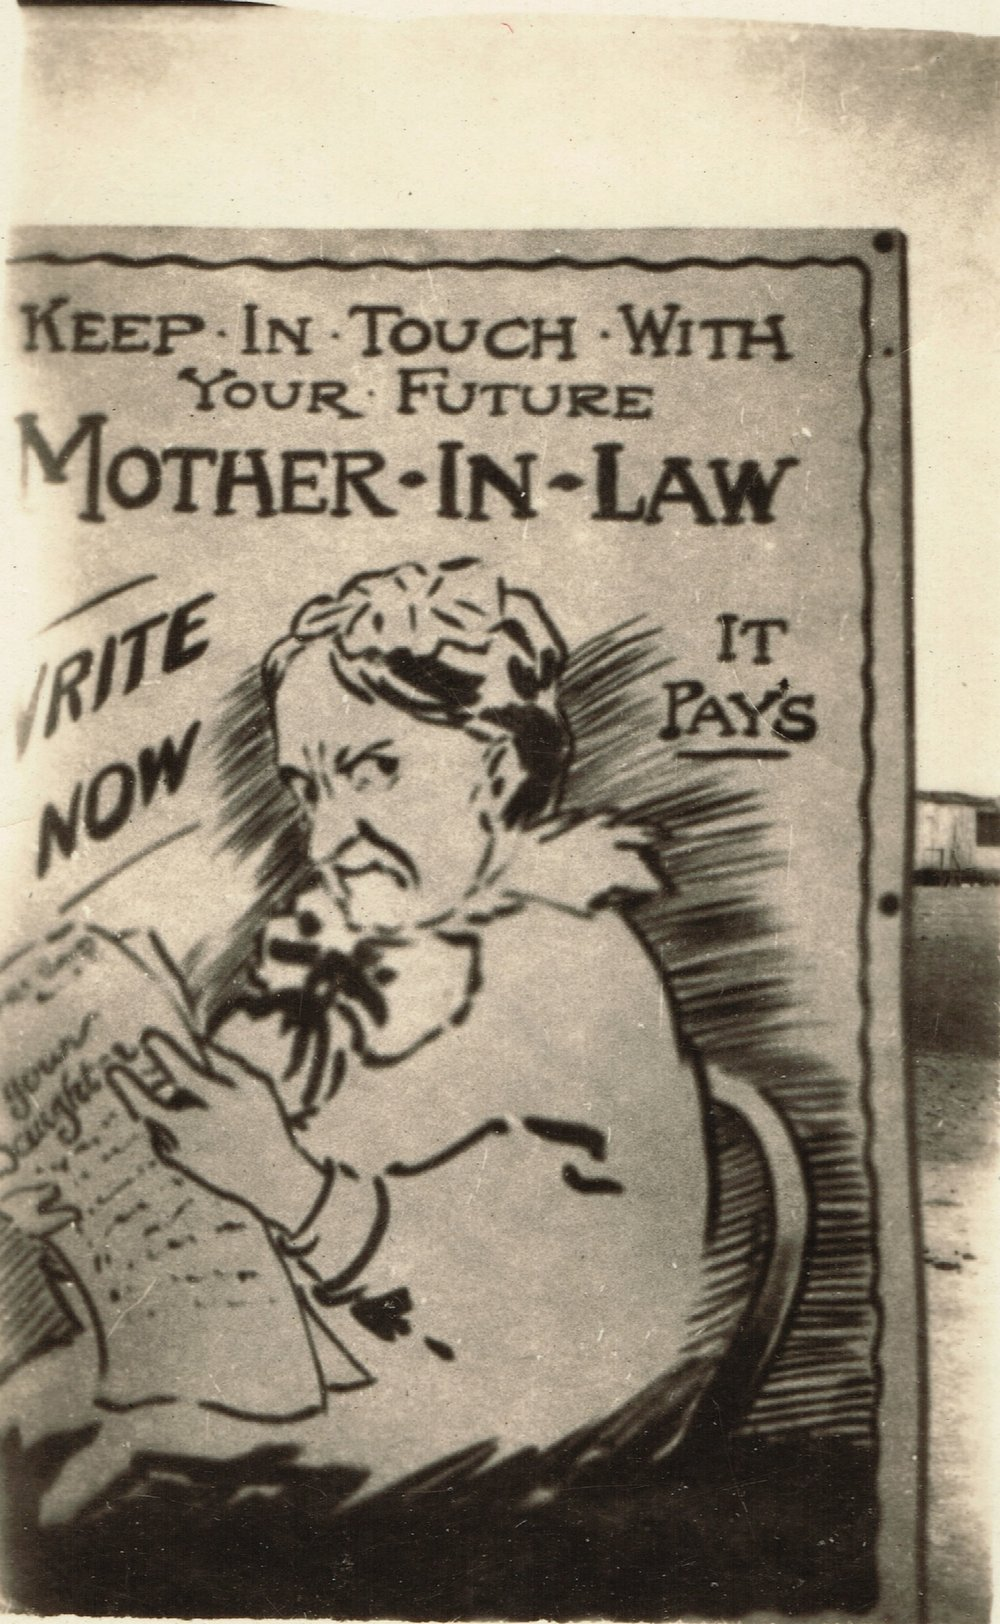 25 Keep in touch with your future mother in law.jpg